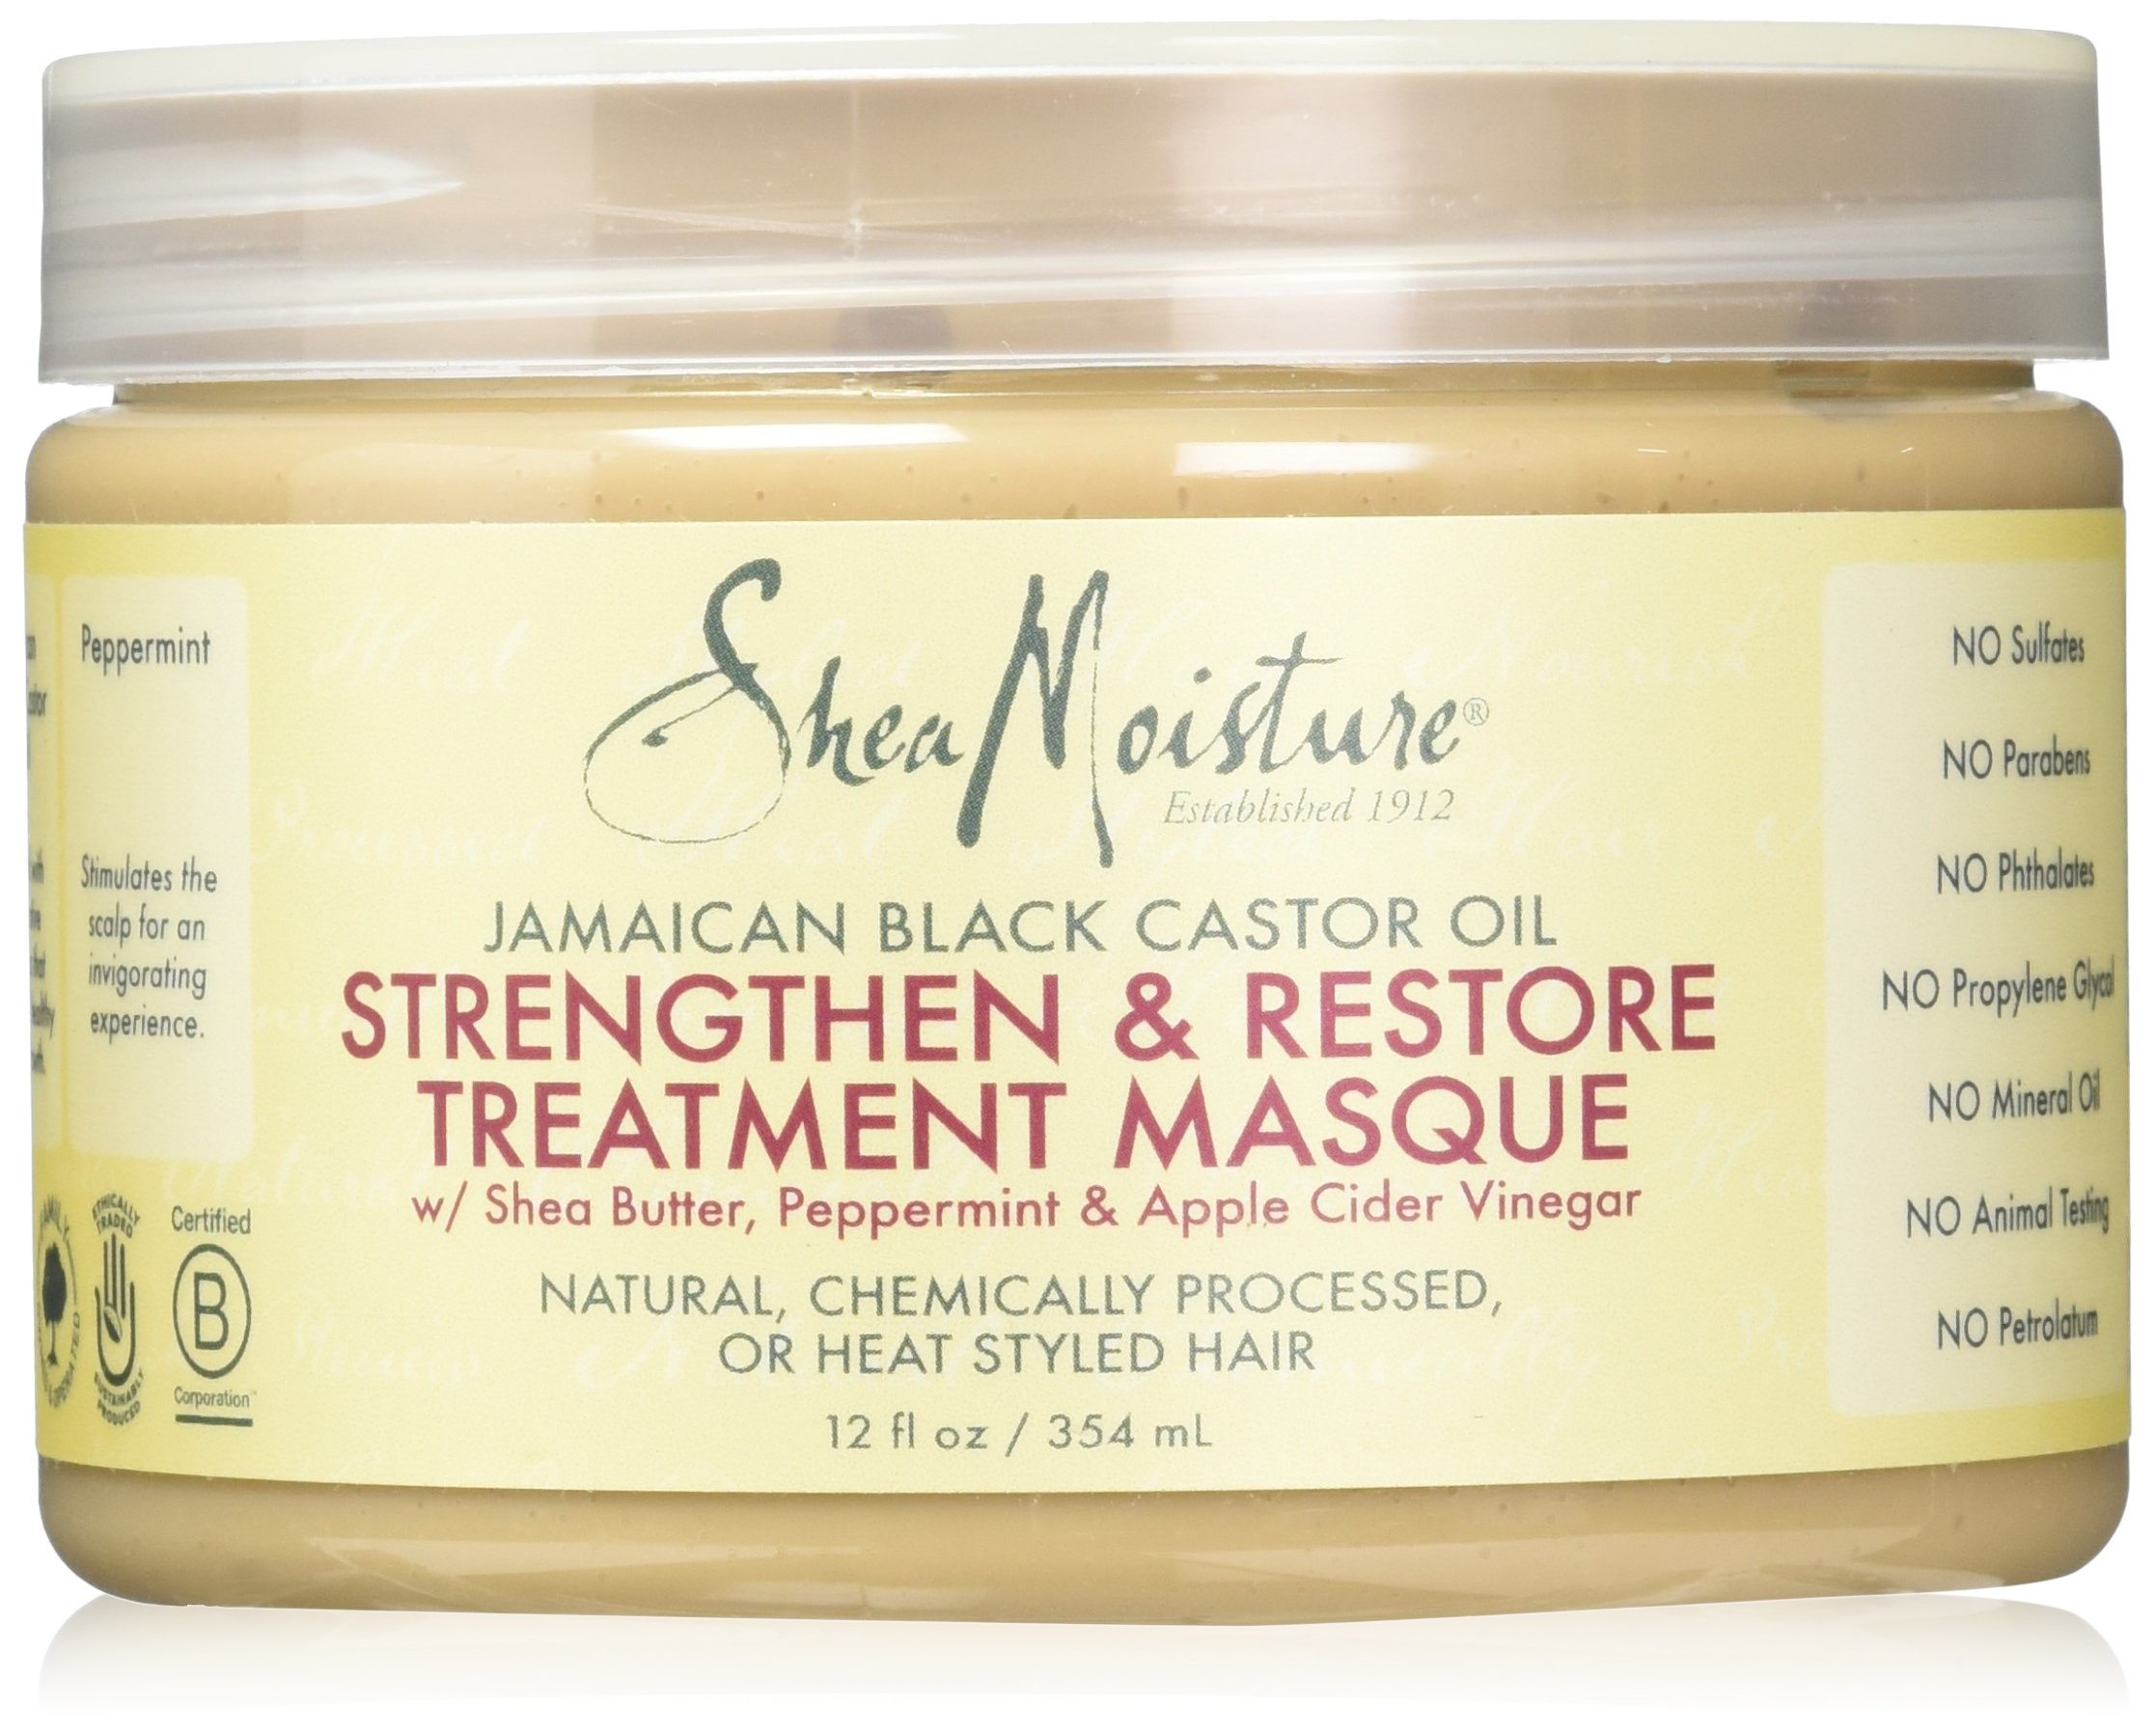 SheaMoistureJamaican Black Castor Oil Strengthen, Grow & Restore Treatment Masque | 12 fl.oz.